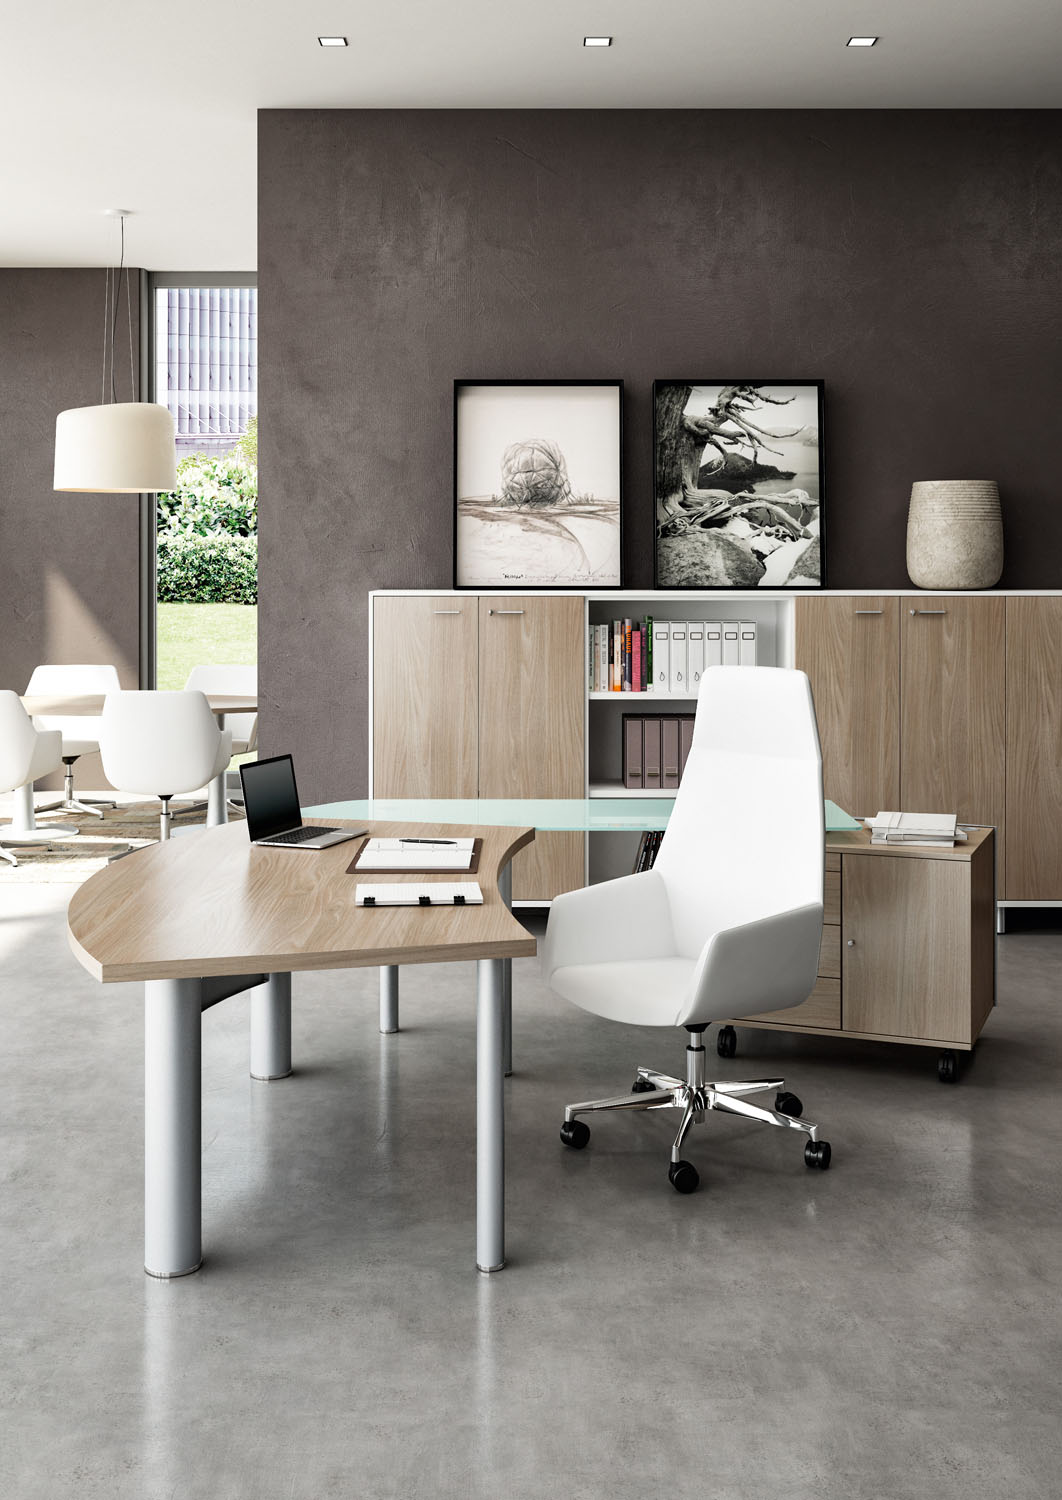 Modern Office Desk: L-Shape Office Desks Are Getting A Sleek Makeover